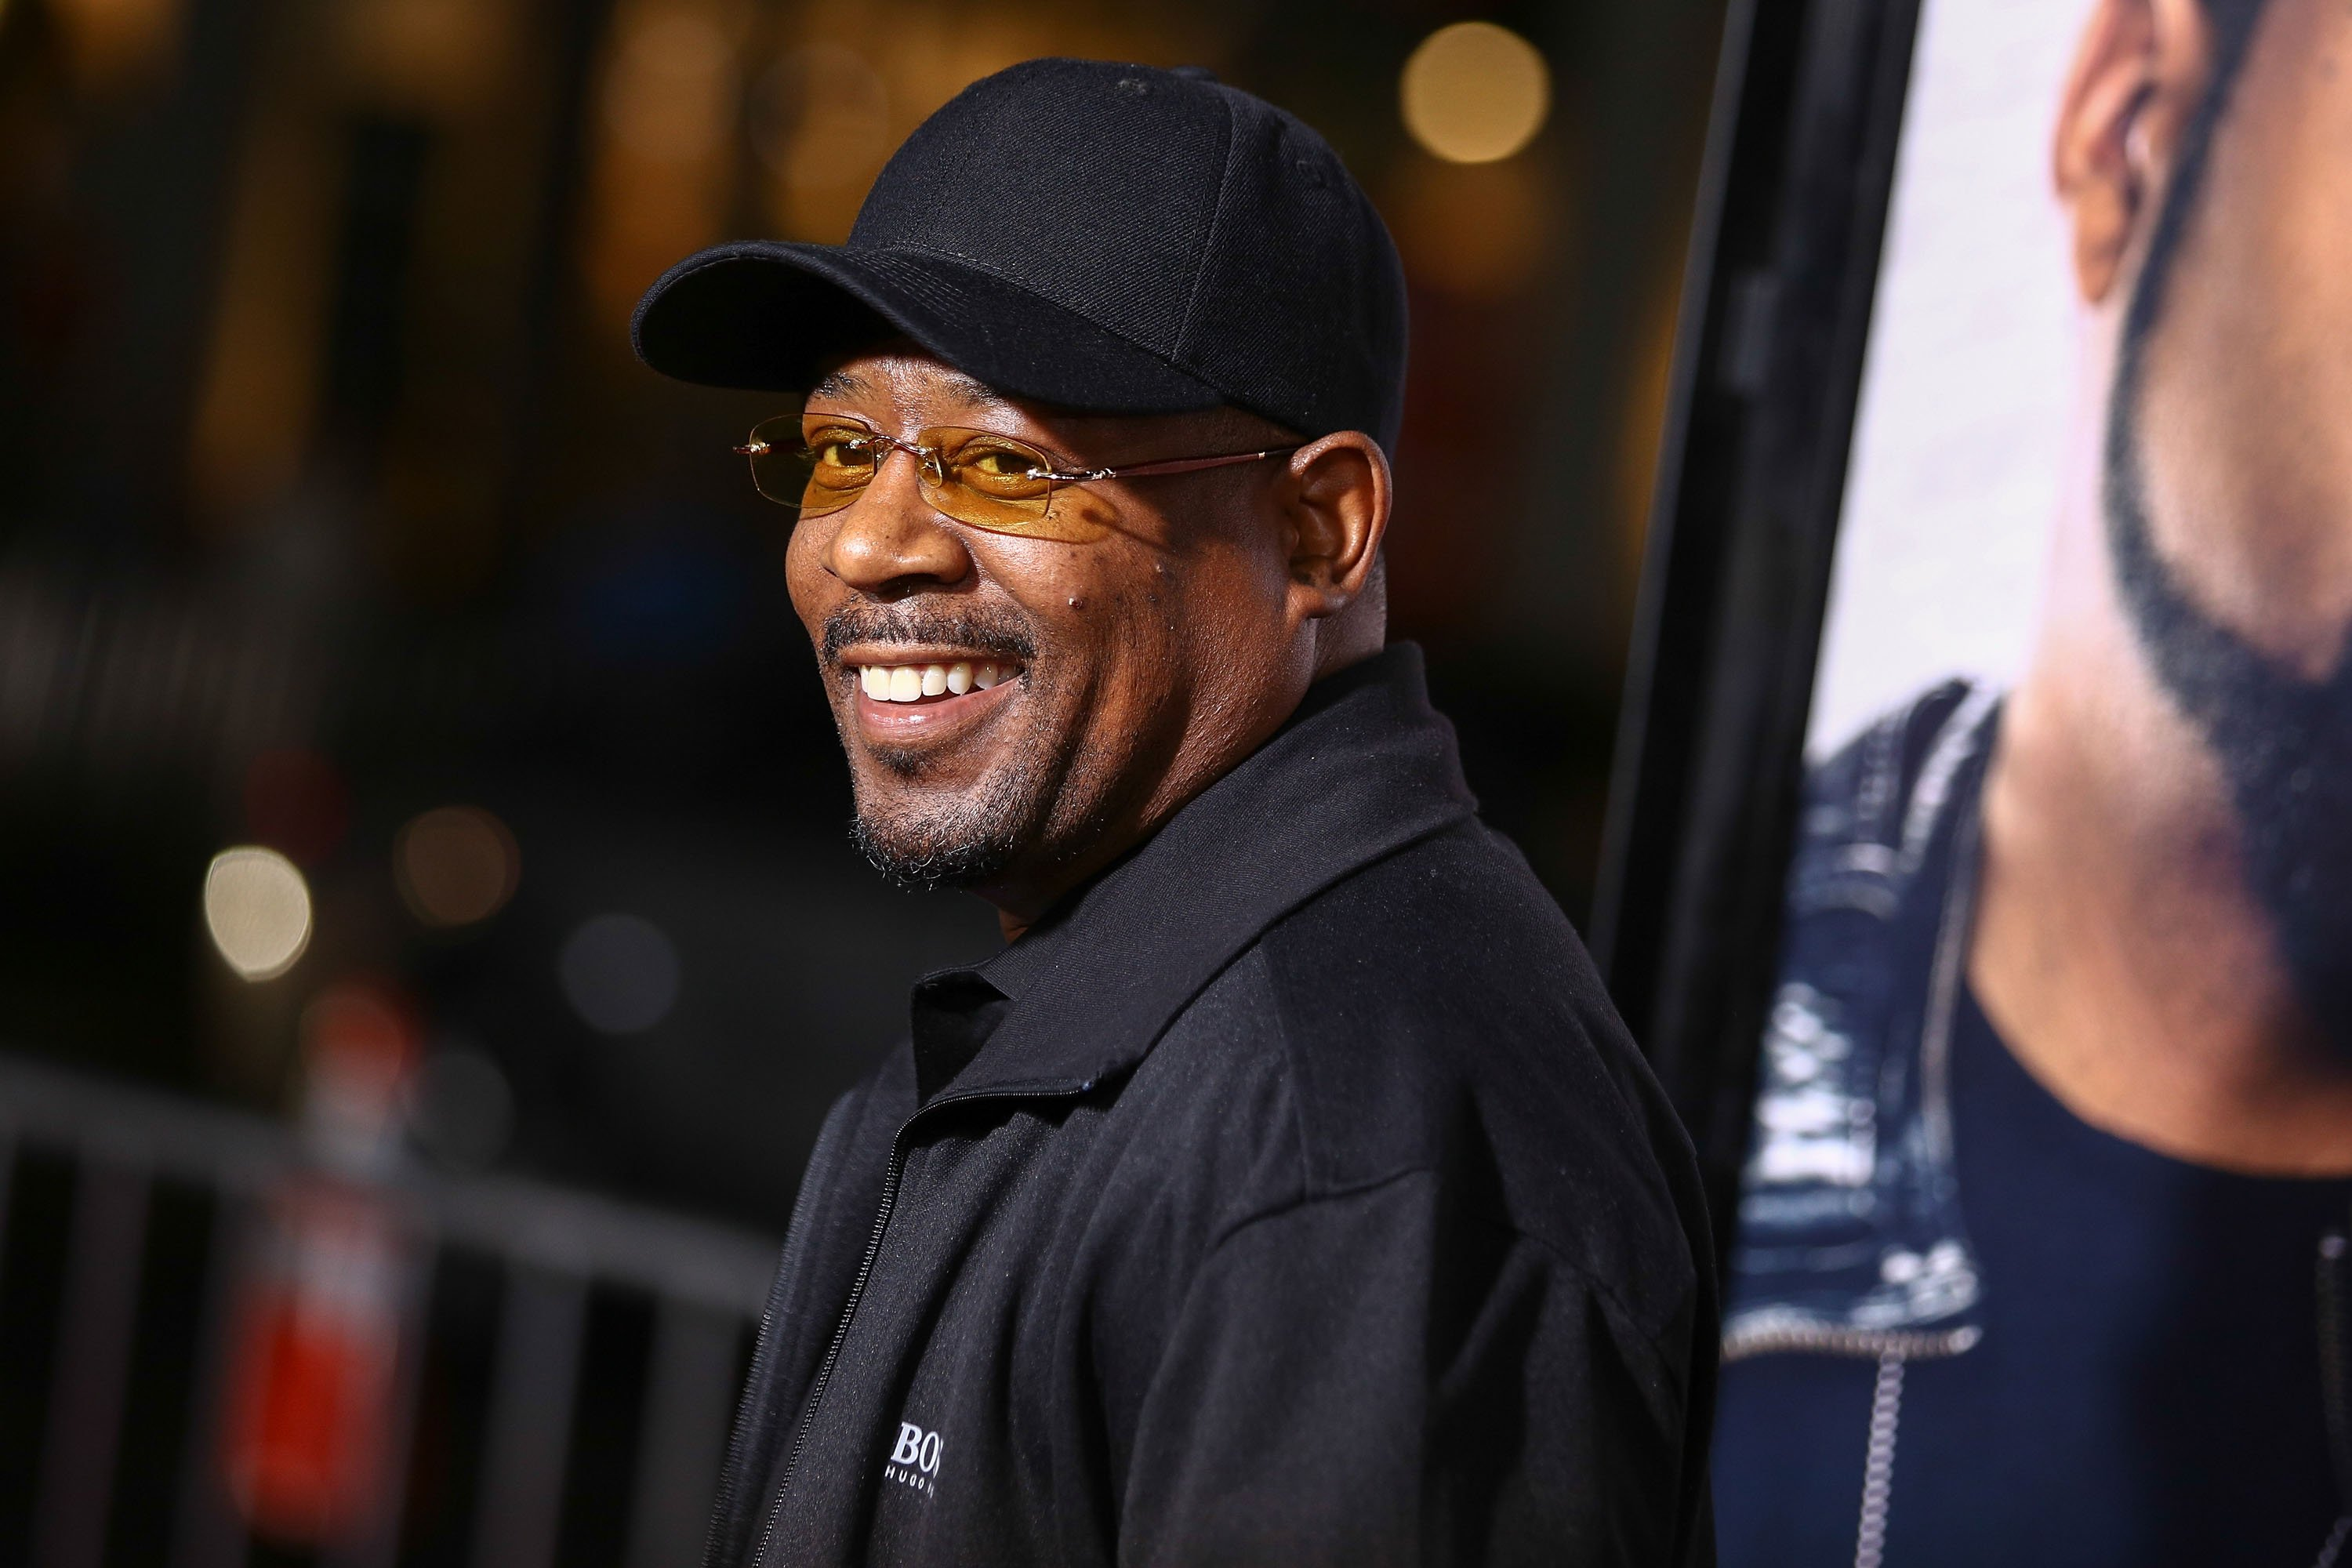 Actor Martin Lawrence attends the premiere of Universal Pictures' 'Ride Along' at TCL Chinese Theatre on January 13, 2014. | Photo: Getty Images